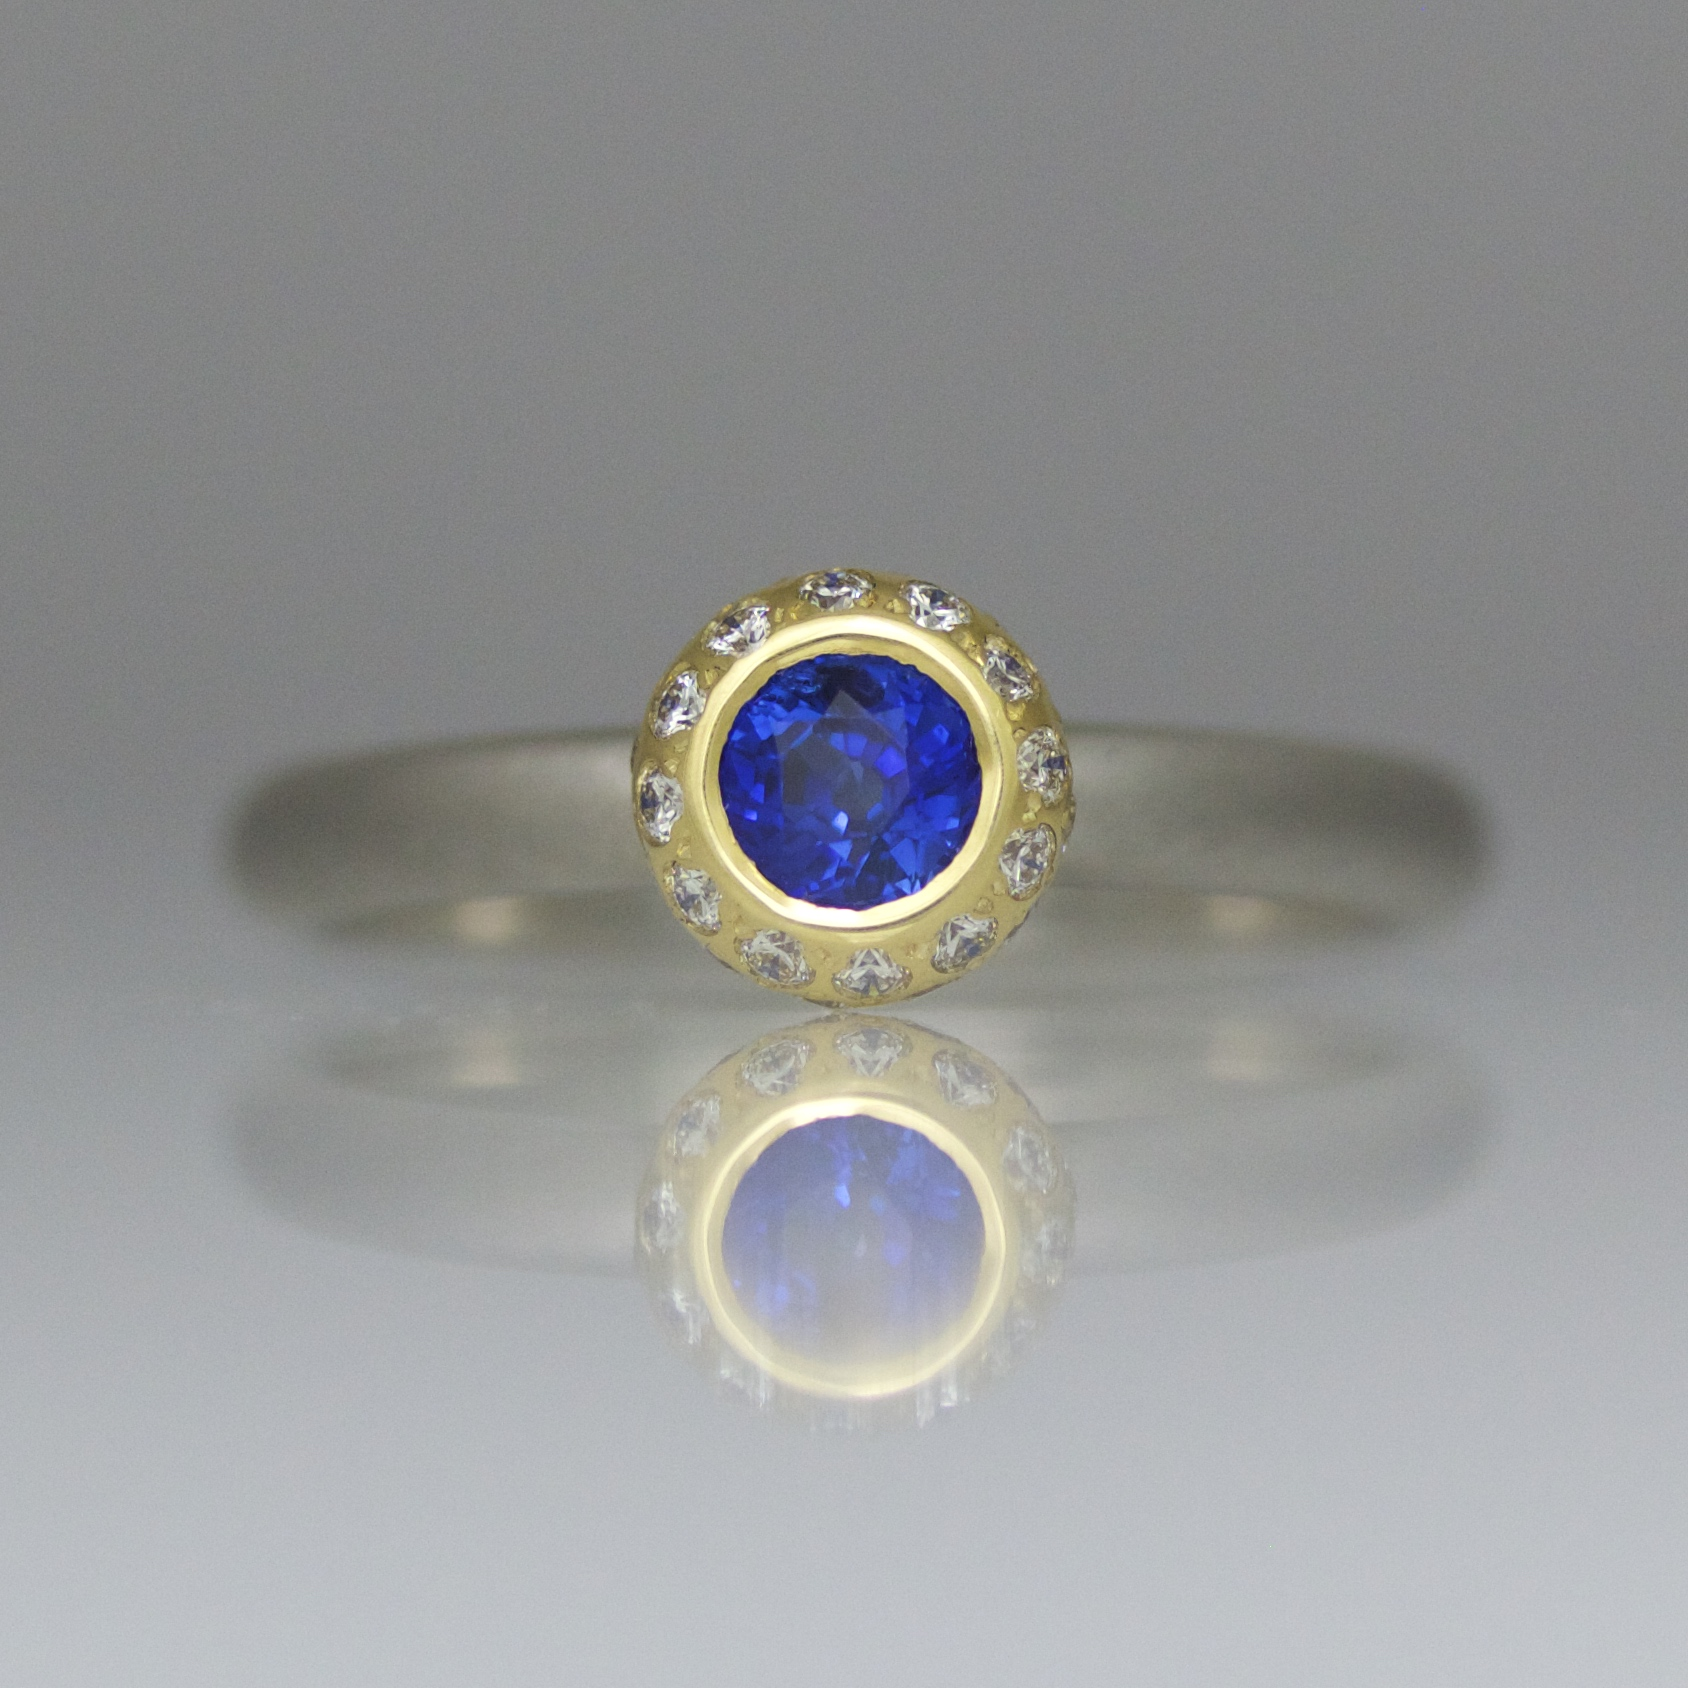 oval home rings mid cut platinum product engagement century in ring vintage sapphire saffire